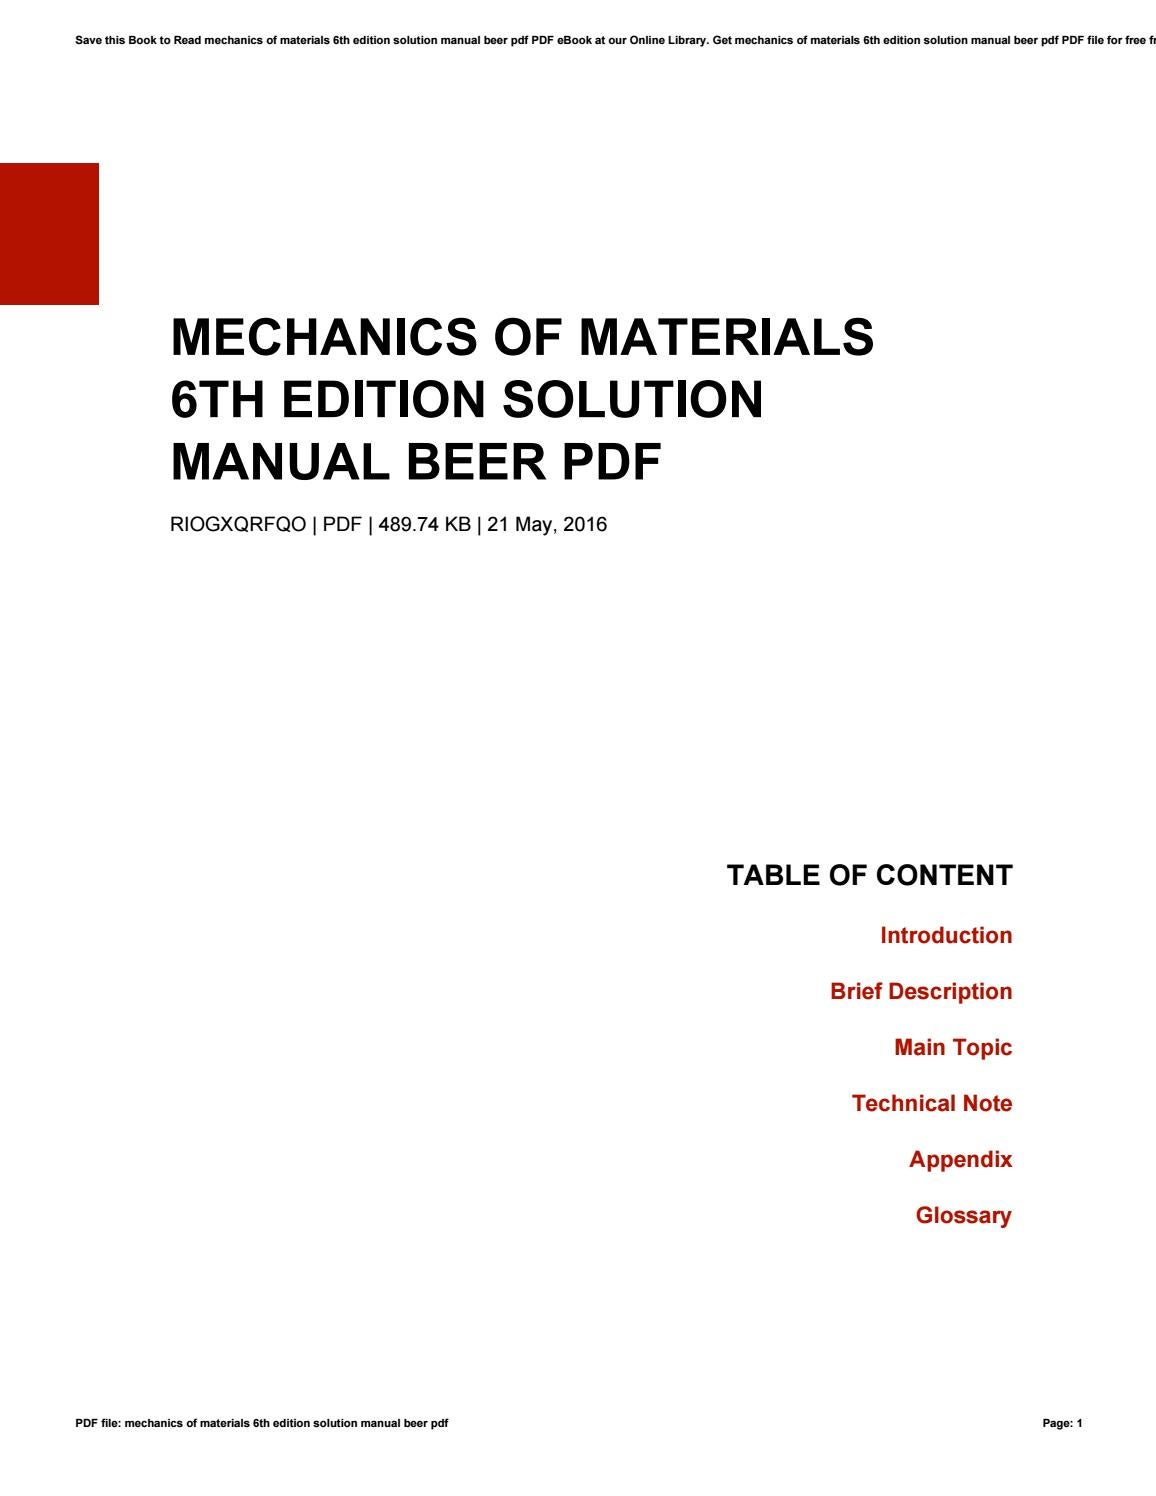 Mechanics of materials 6th edition solution manual beer pdf by  GailMarin3225 - issuu